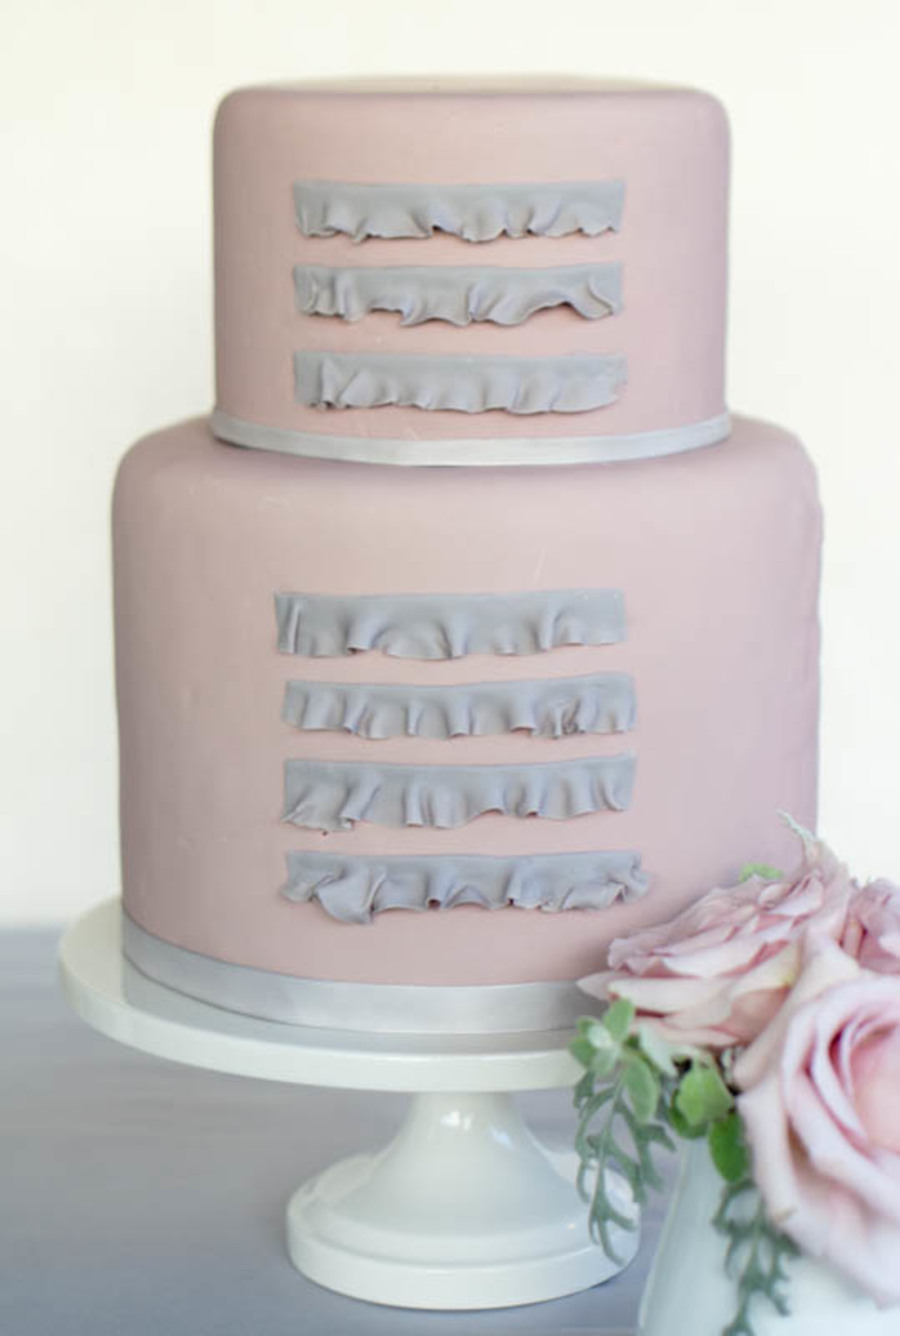 Simple Ruffle Cake on Cake Central